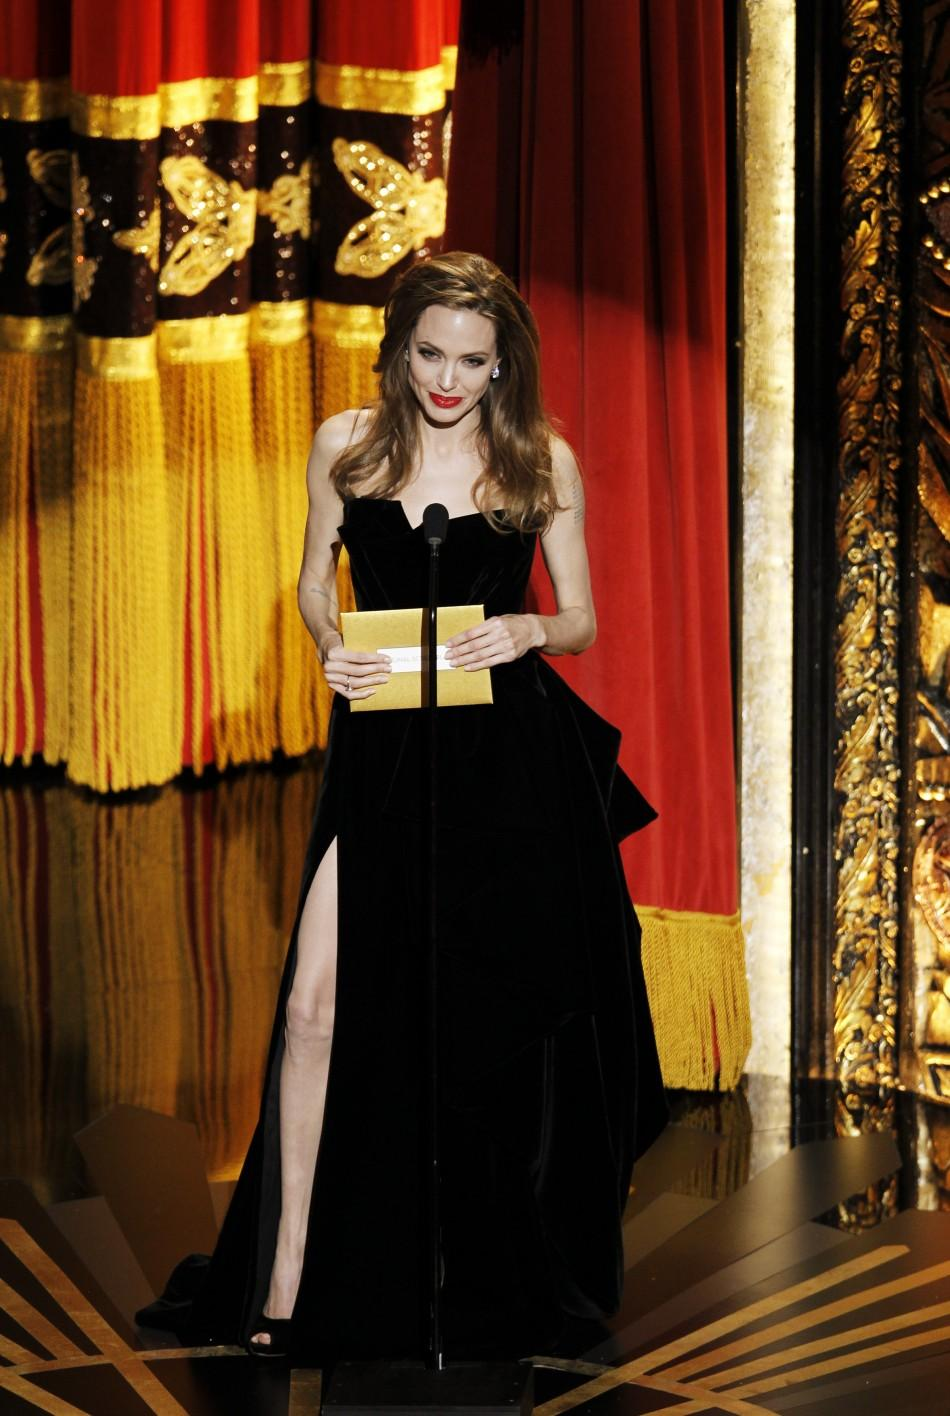 Angelina Jolie Leg An Internet Meme Sensation After